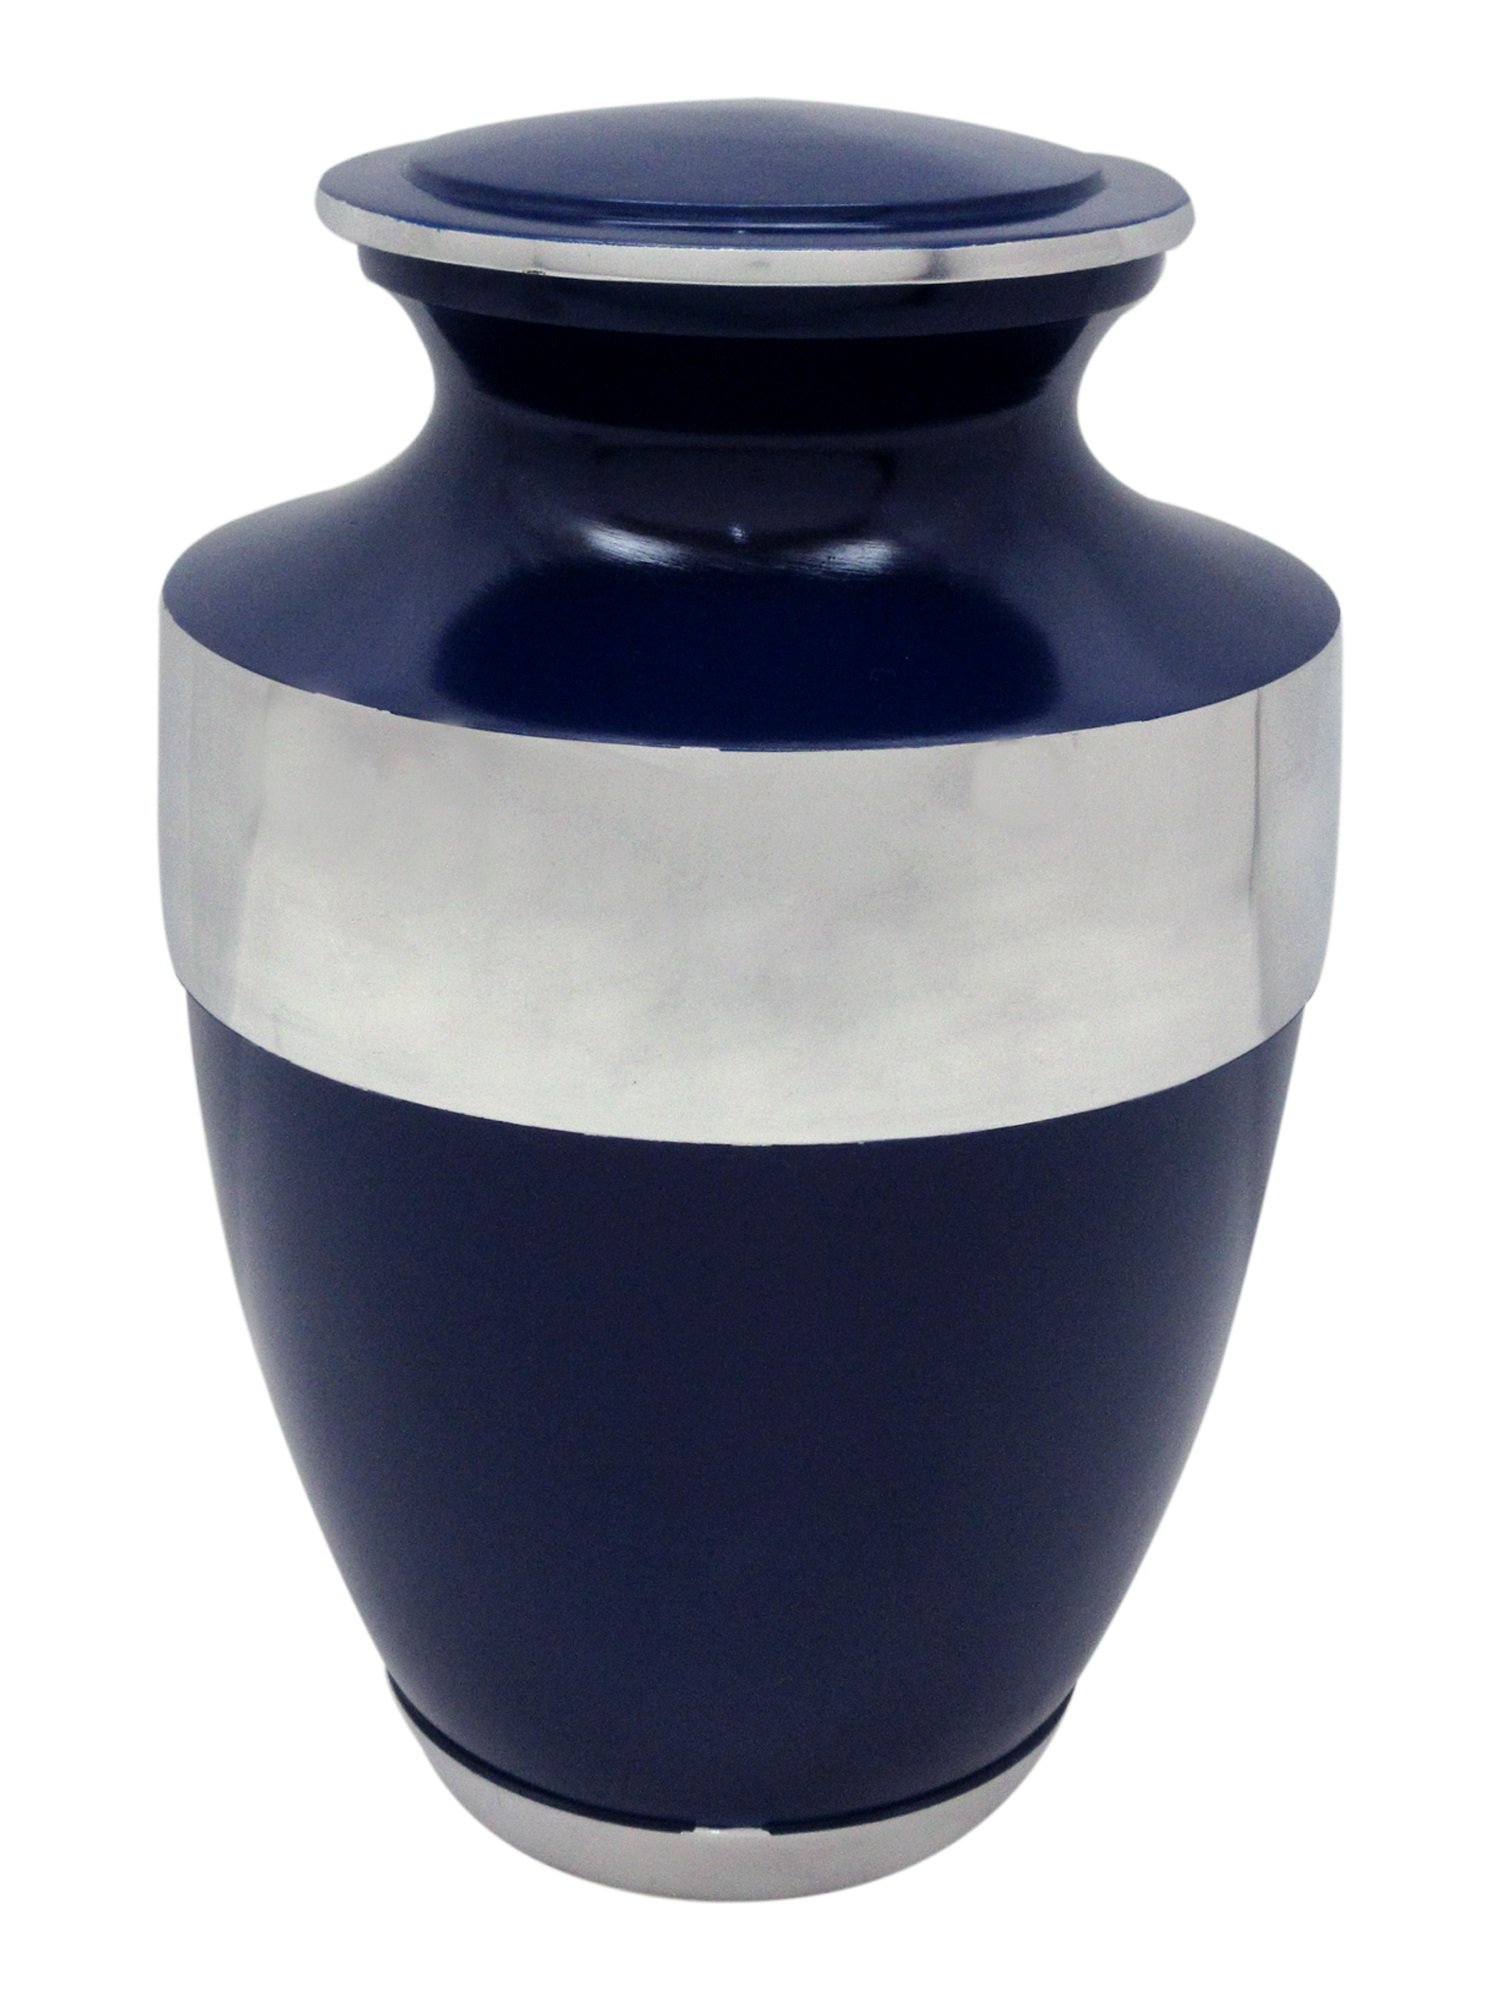 Urns for Human Ashes, Customized Blue Cremation Urn, Memorial Adult Human Urn with Velvet Bag and Personalization